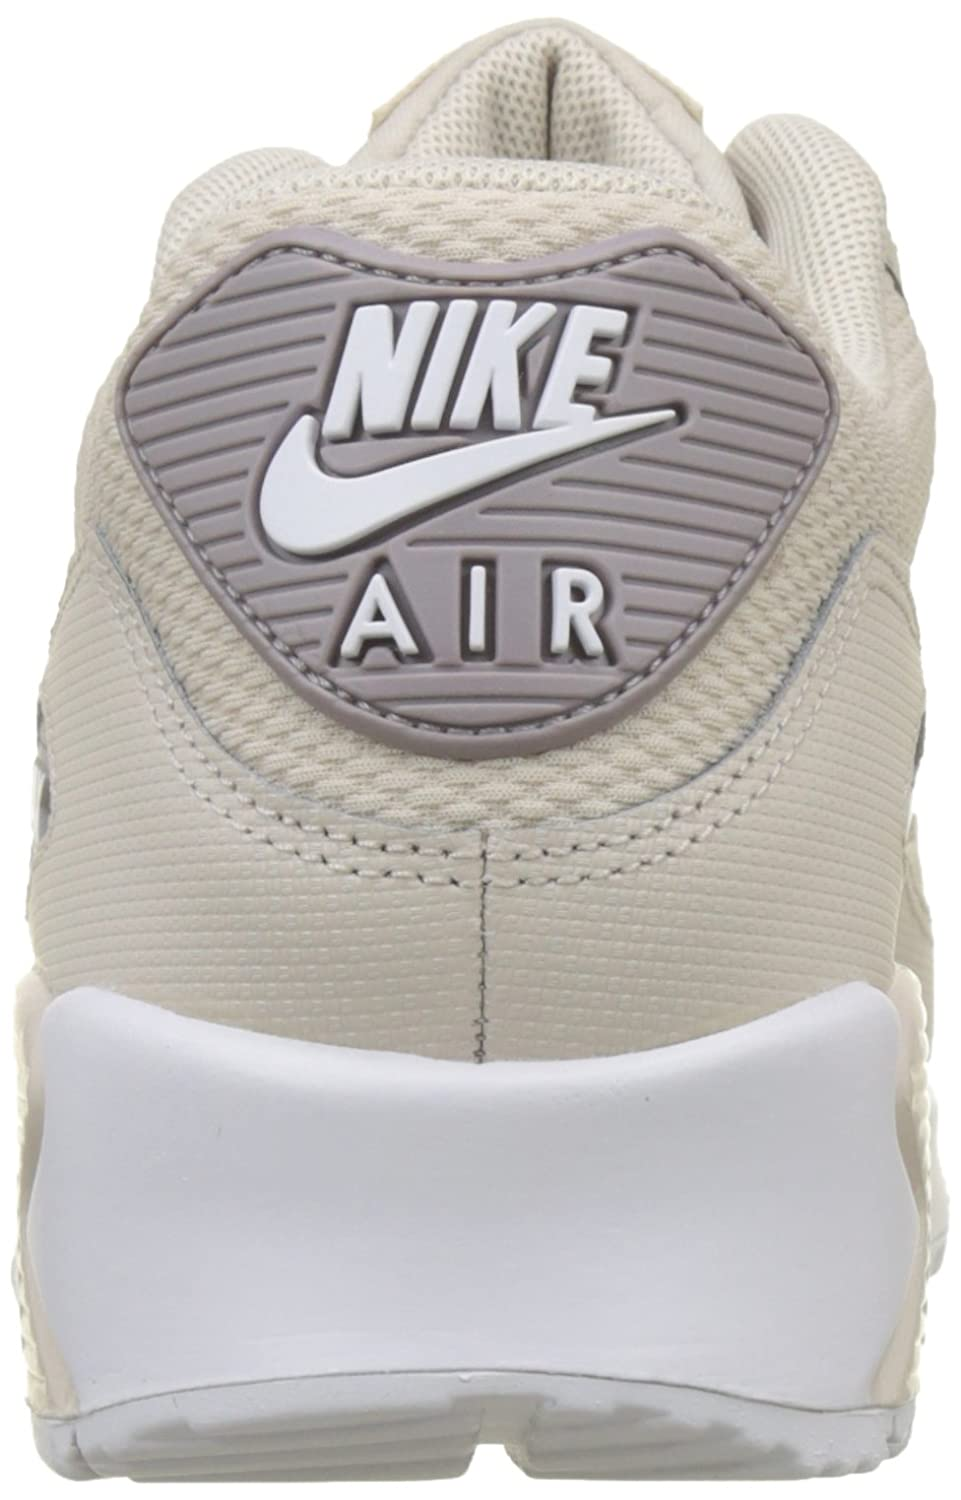 Nike Wmns Air Sand/Weiß/Atmosphere Max 90 Damen Sneakers Beige (Desert Sand/Weiß/Atmosphere Air Grau 054) aae7bc